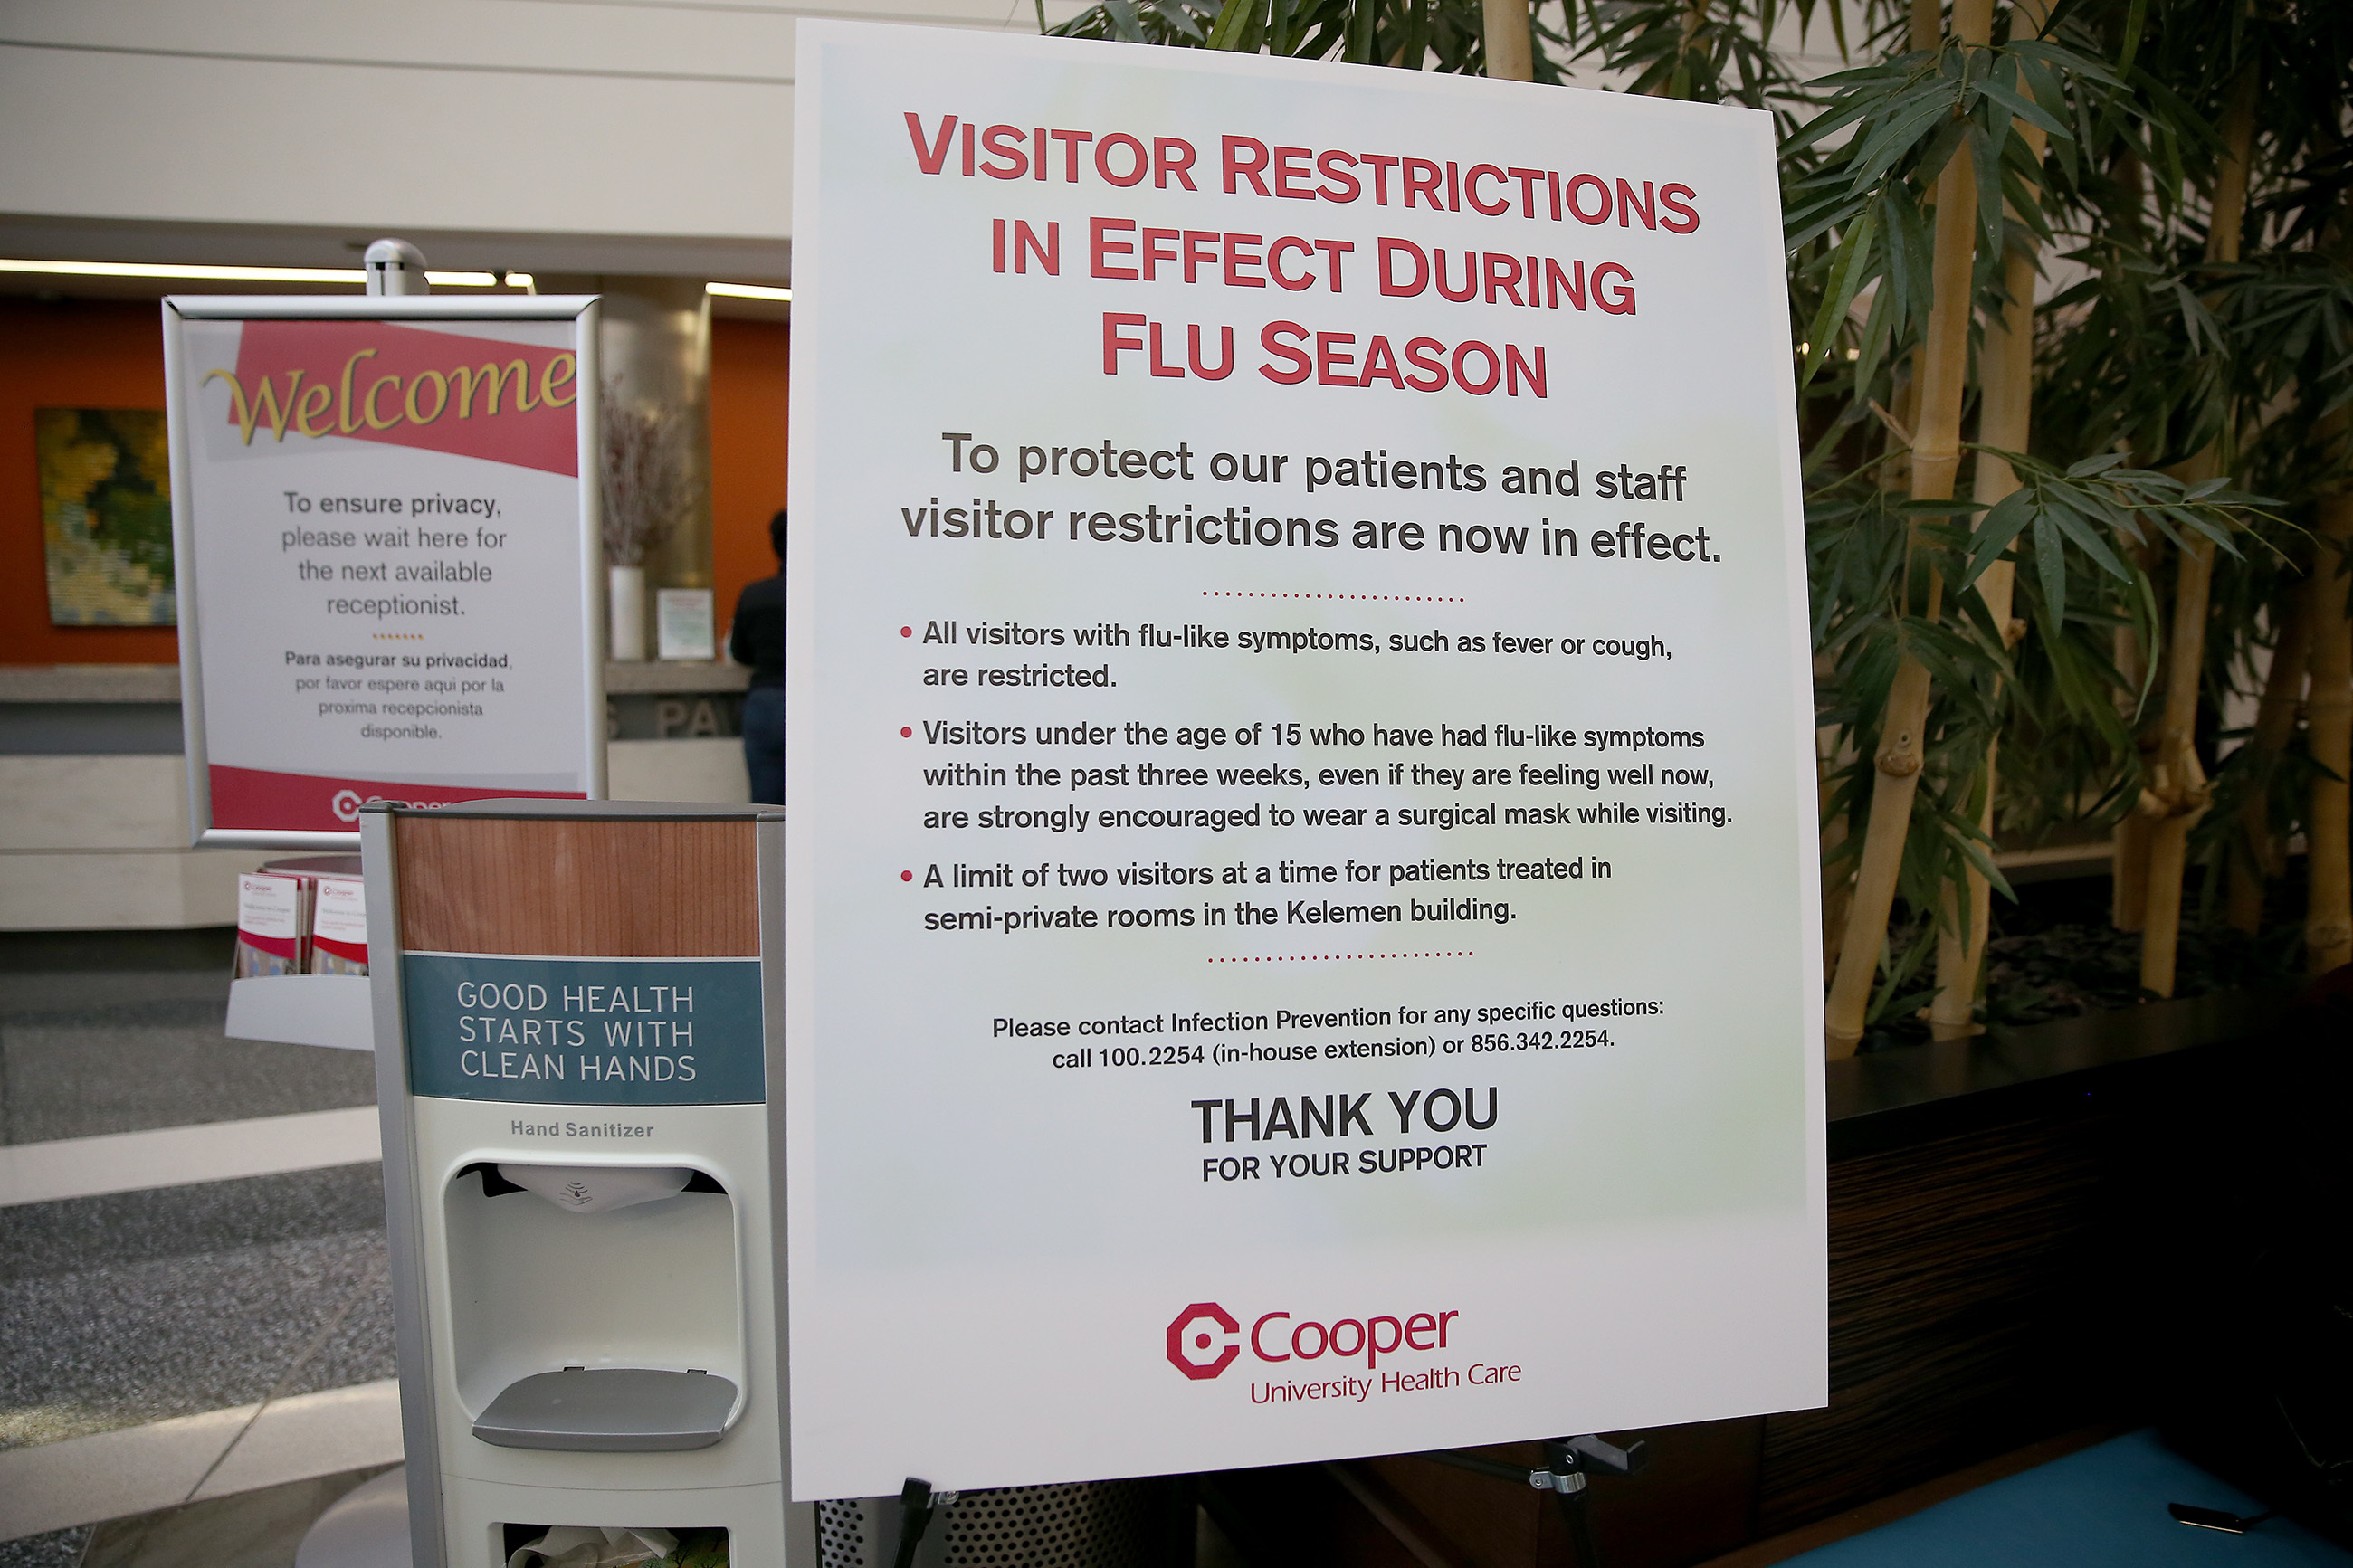 A flu warning sign and a hand sanitizer station now greet visitors in the lobby of Cooper University Hospital in Camden as the hospital deals with an unusually busy flu season.